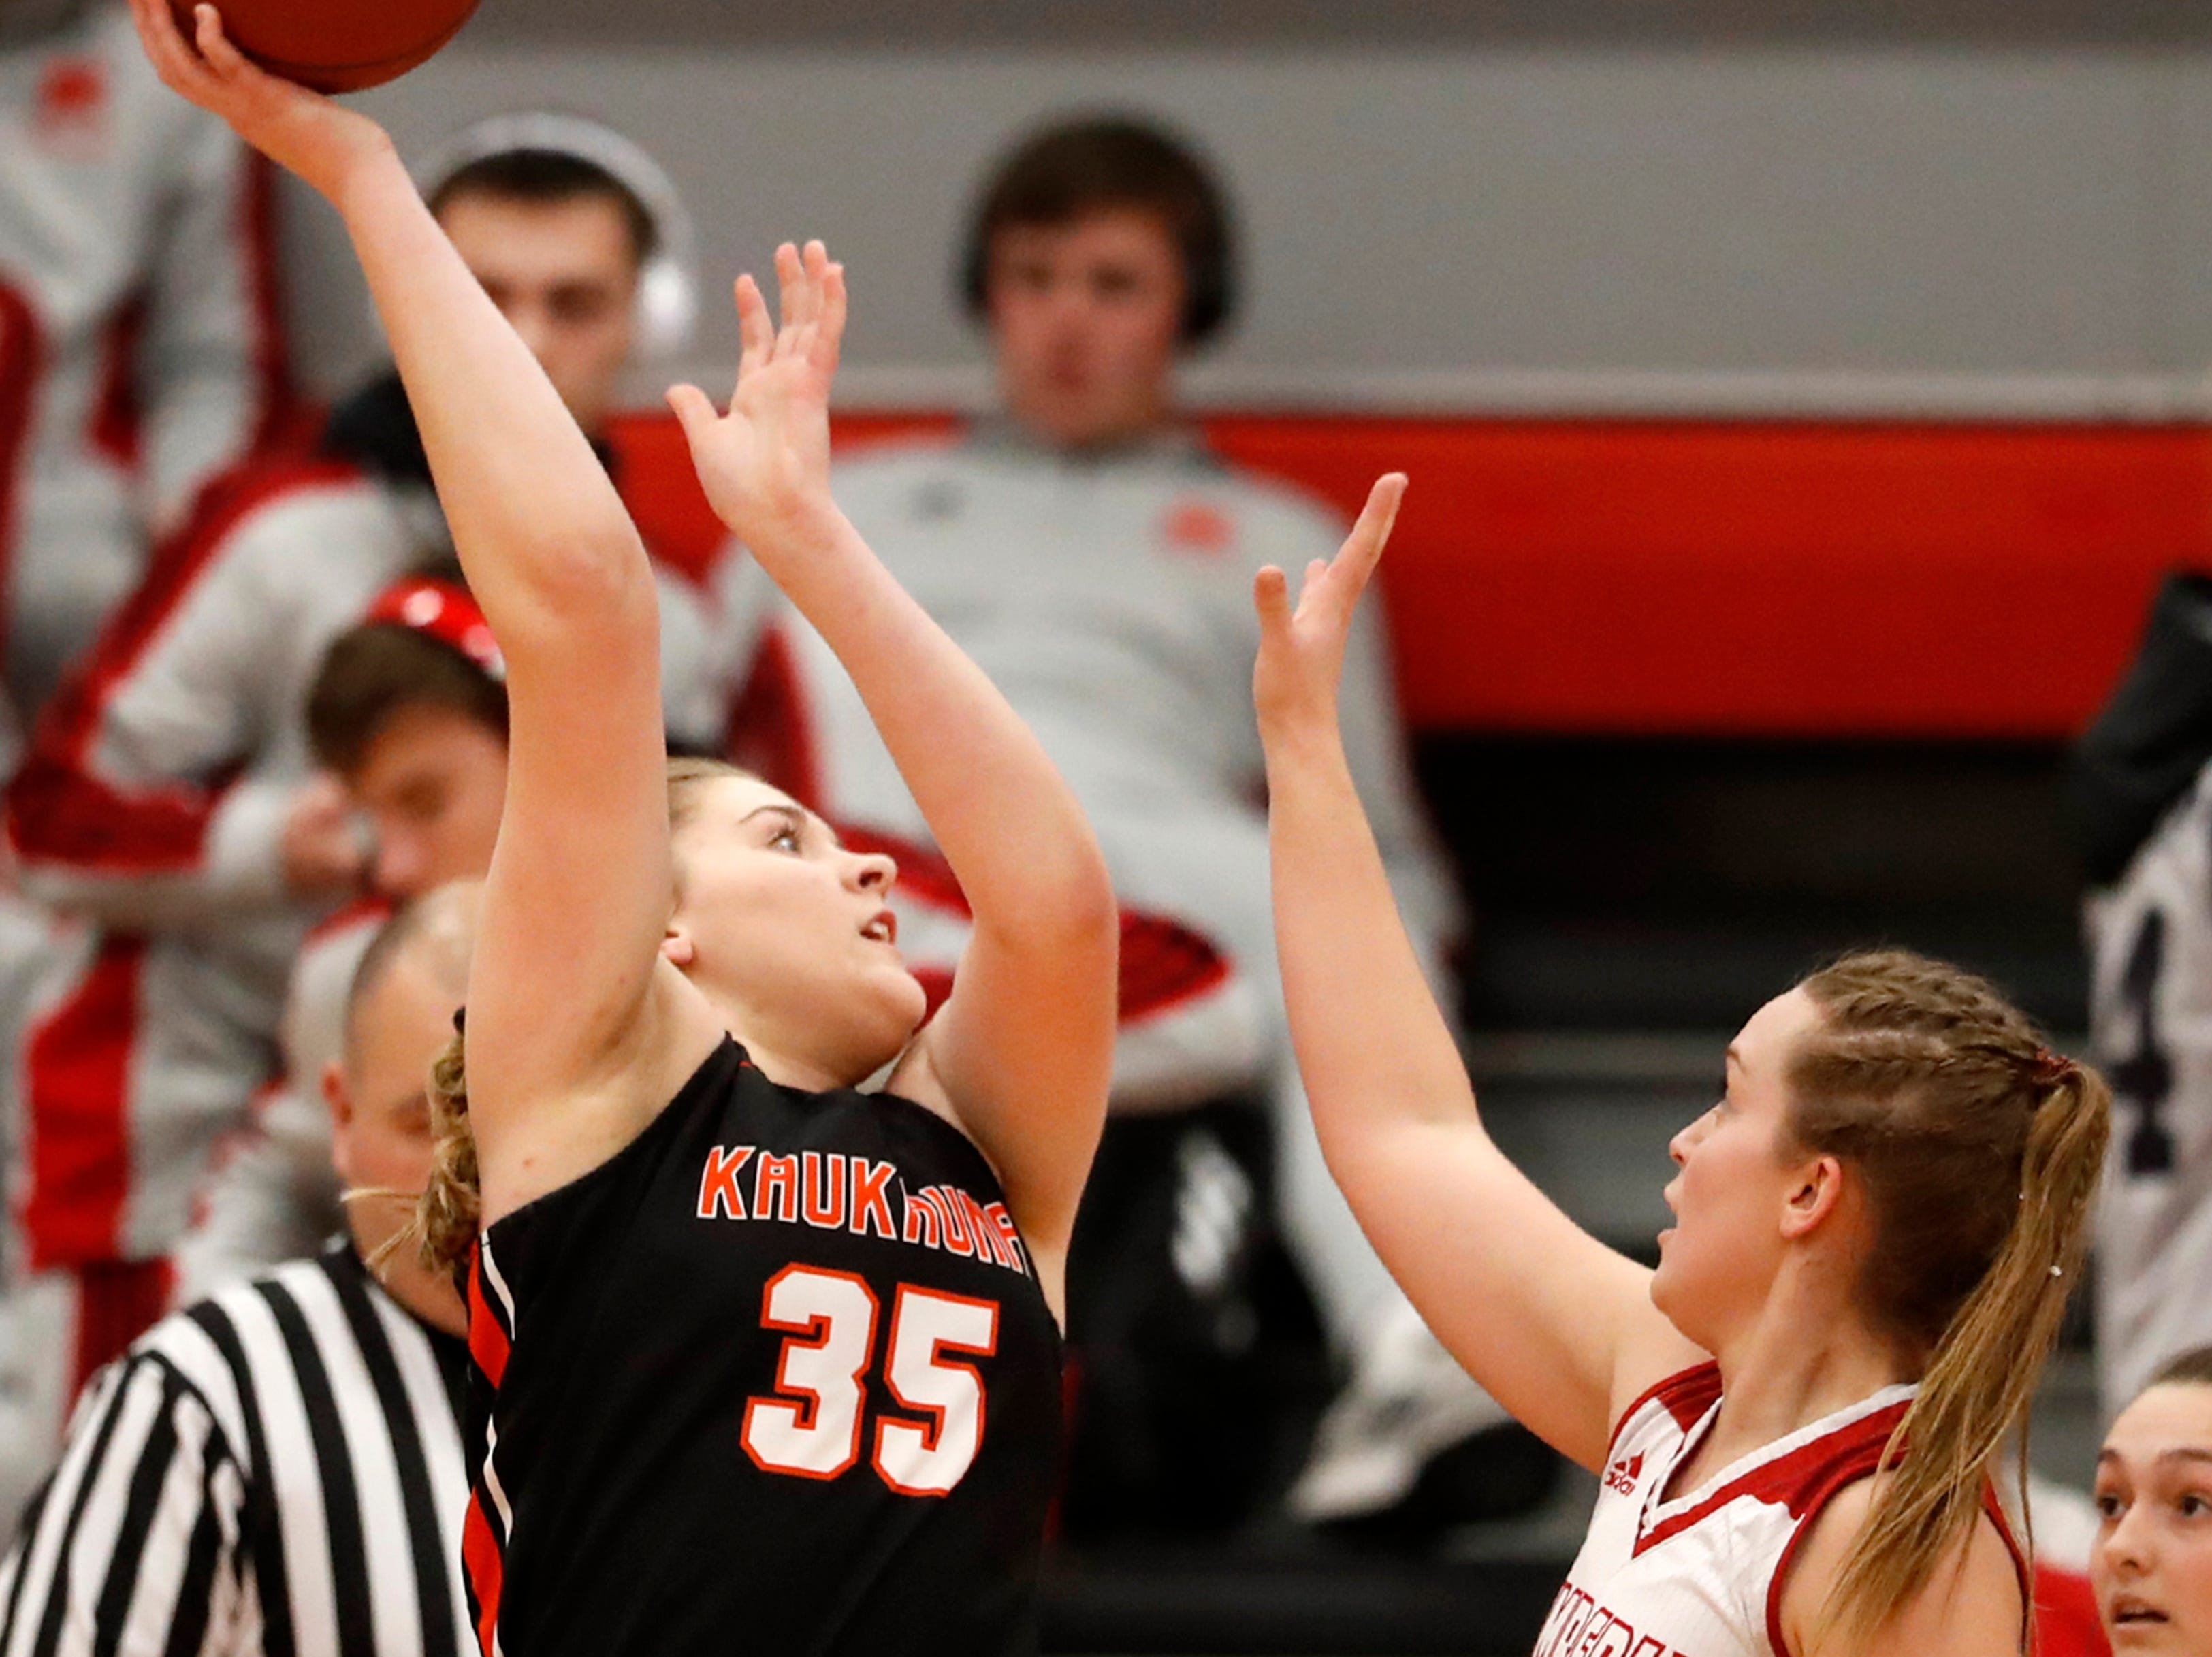 Kaukauna High School's Madison Herdina tries to get a shot off against Kimberly High School Friday, Dec. 7, 2018, in Kimberly, Wis.